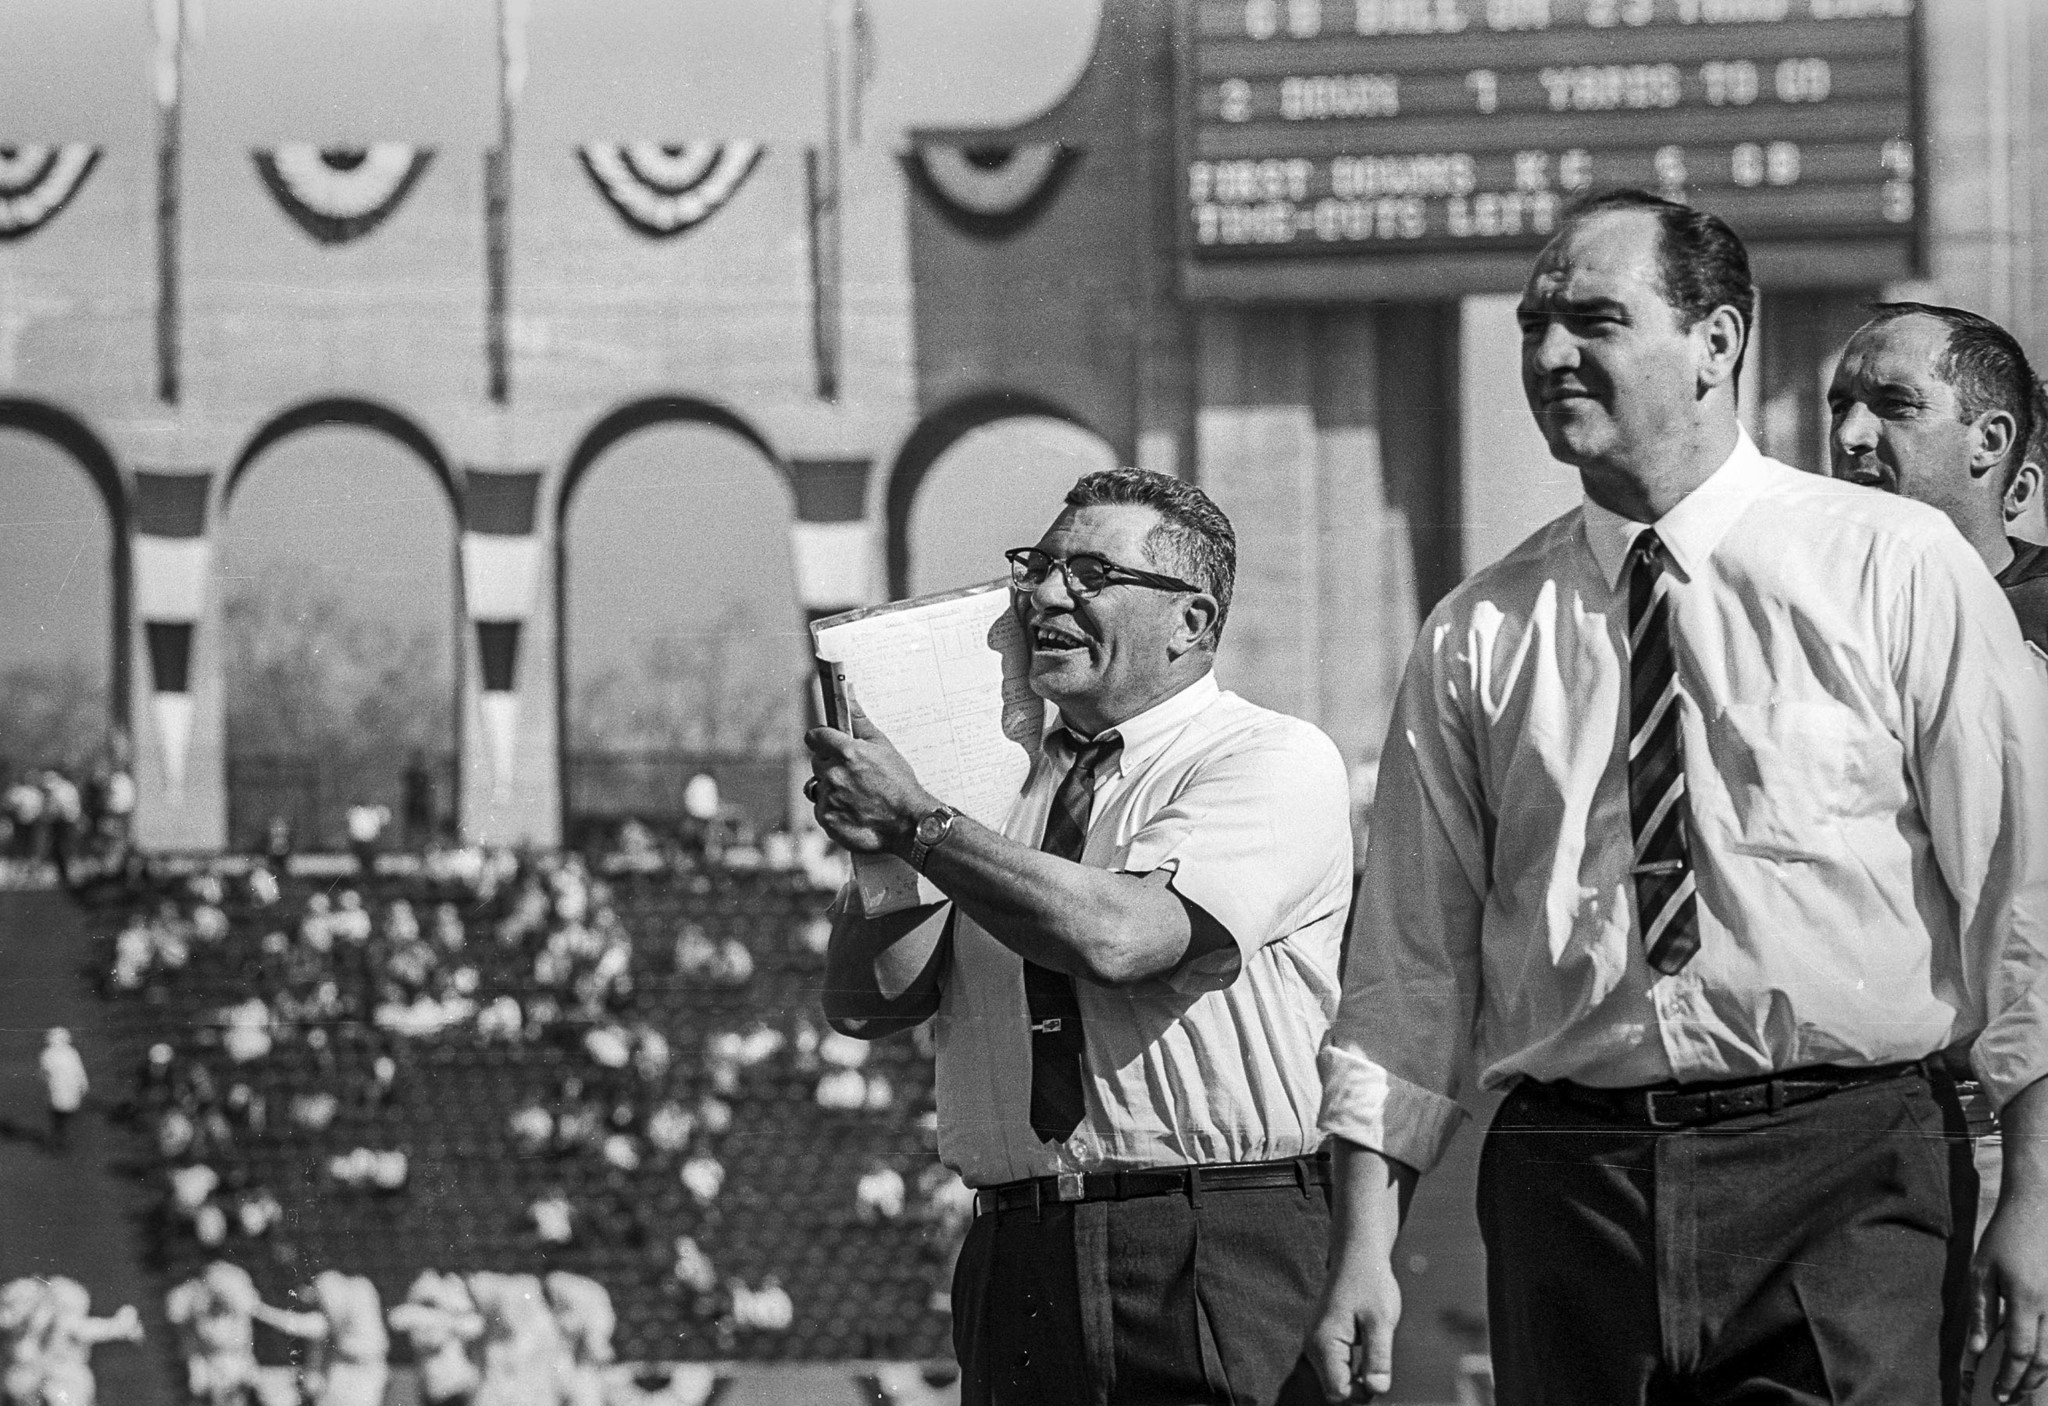 Jan. 15, 1967: Green Bay Packers head coach Vince Lombardi, center, on sidelines at Los Angeles Memo